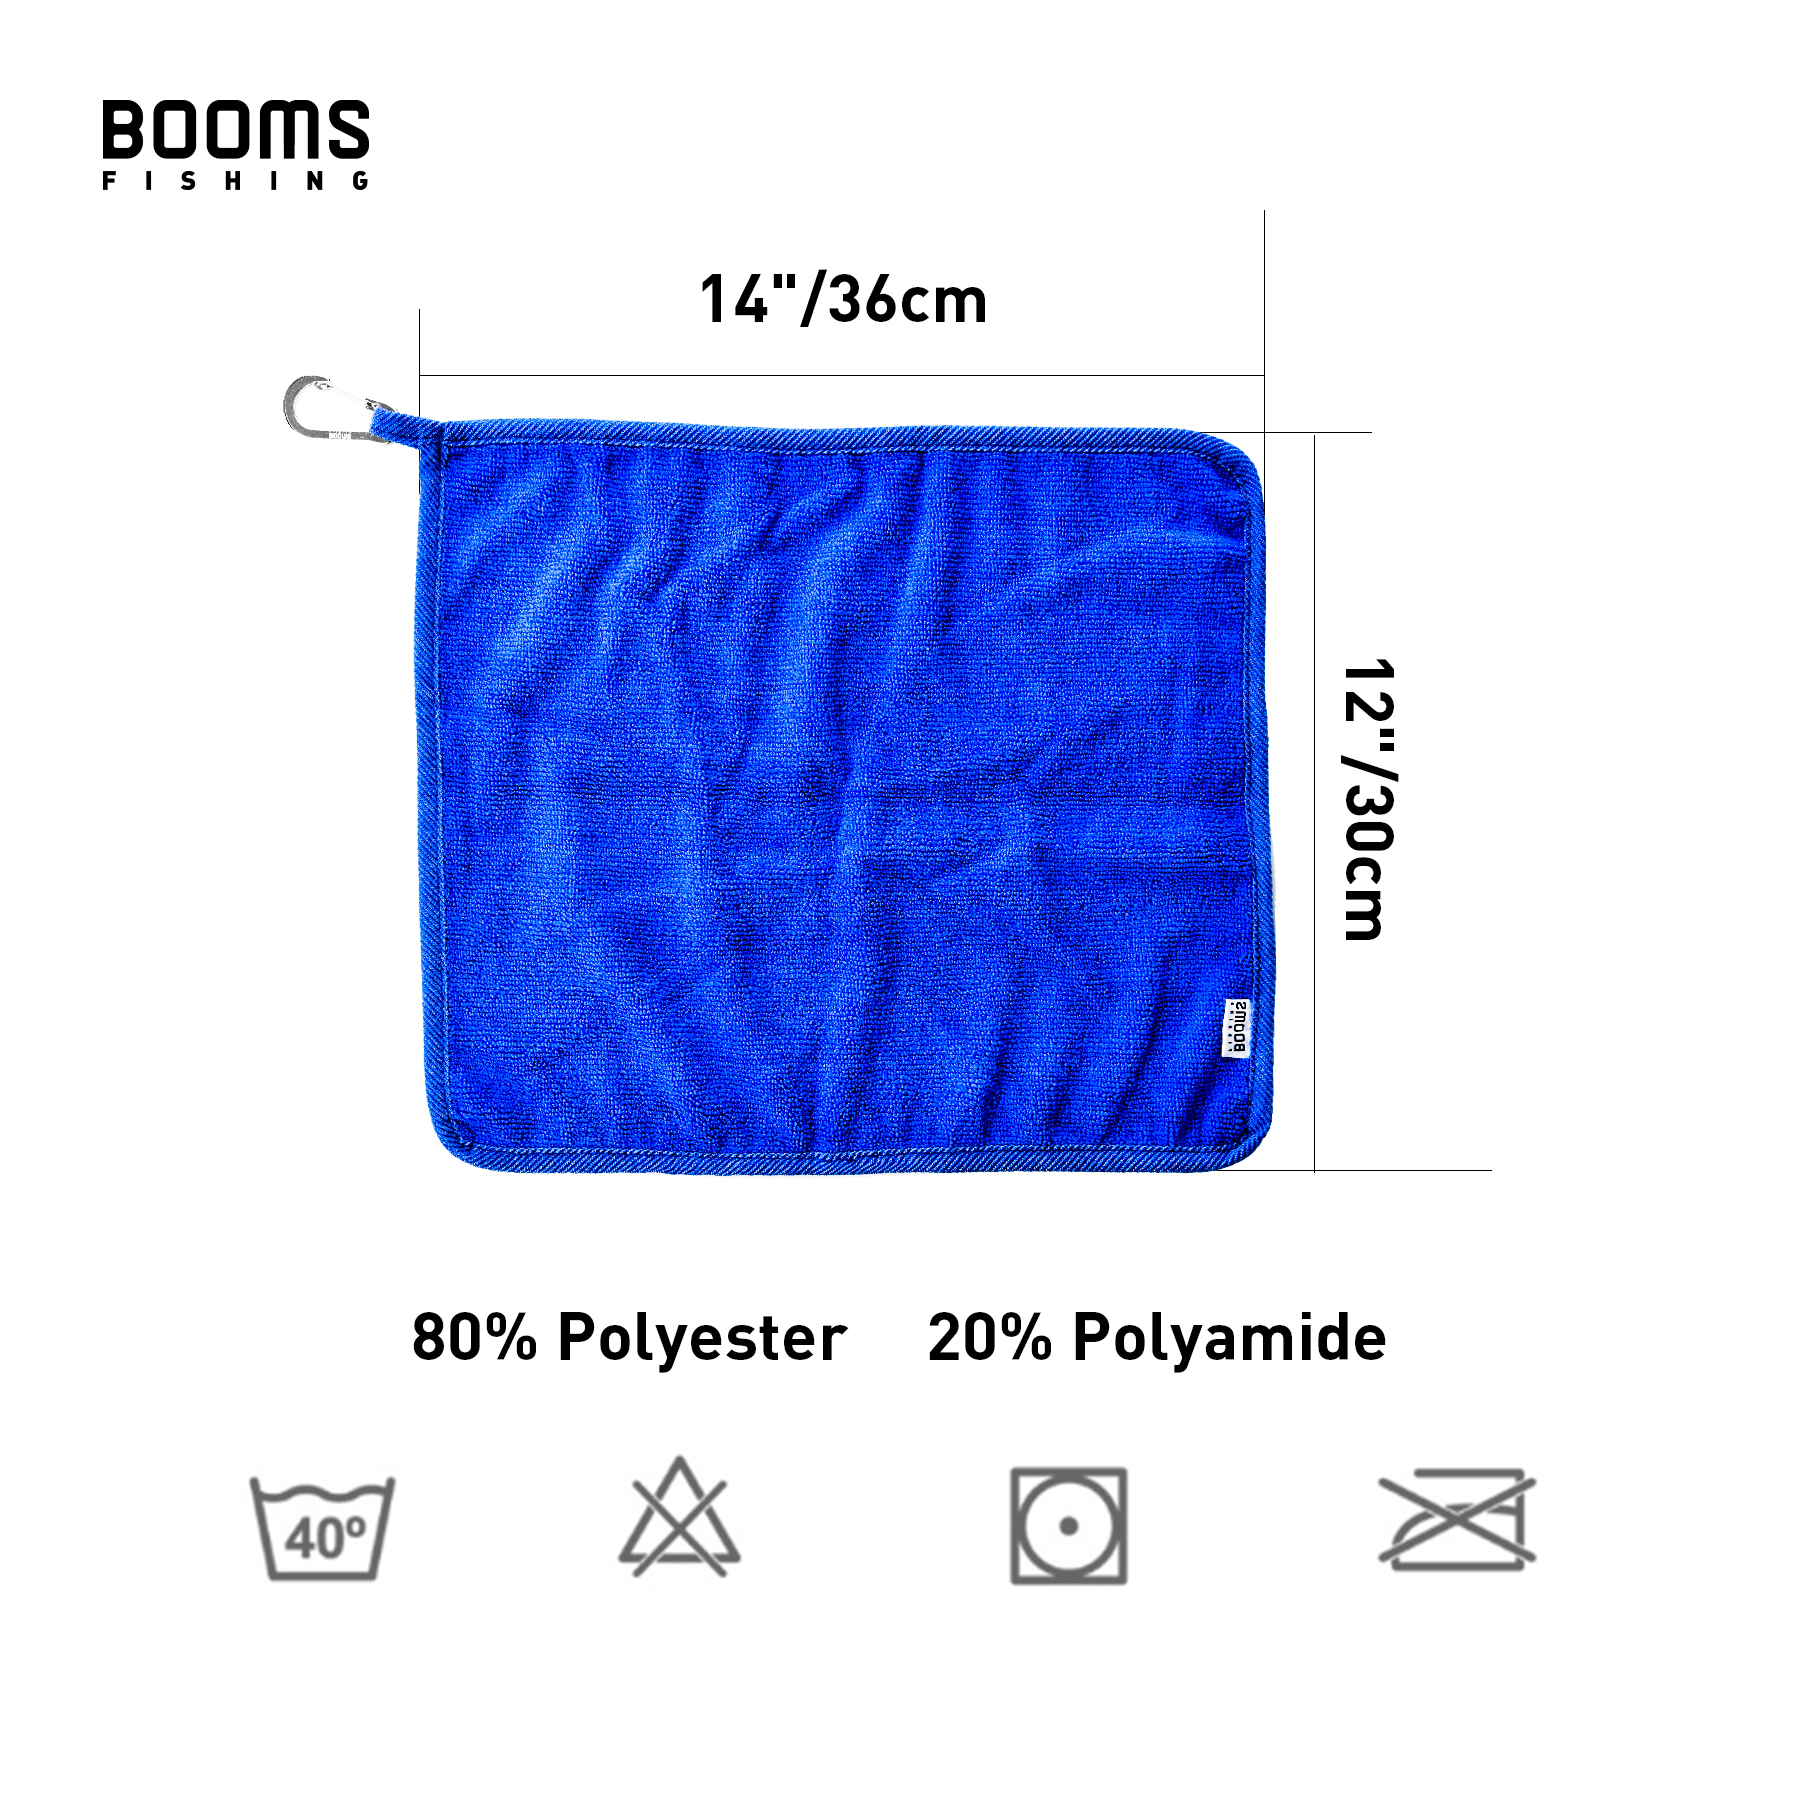 Booms Fishing B0T Microfiber Fishing Towel with Clip